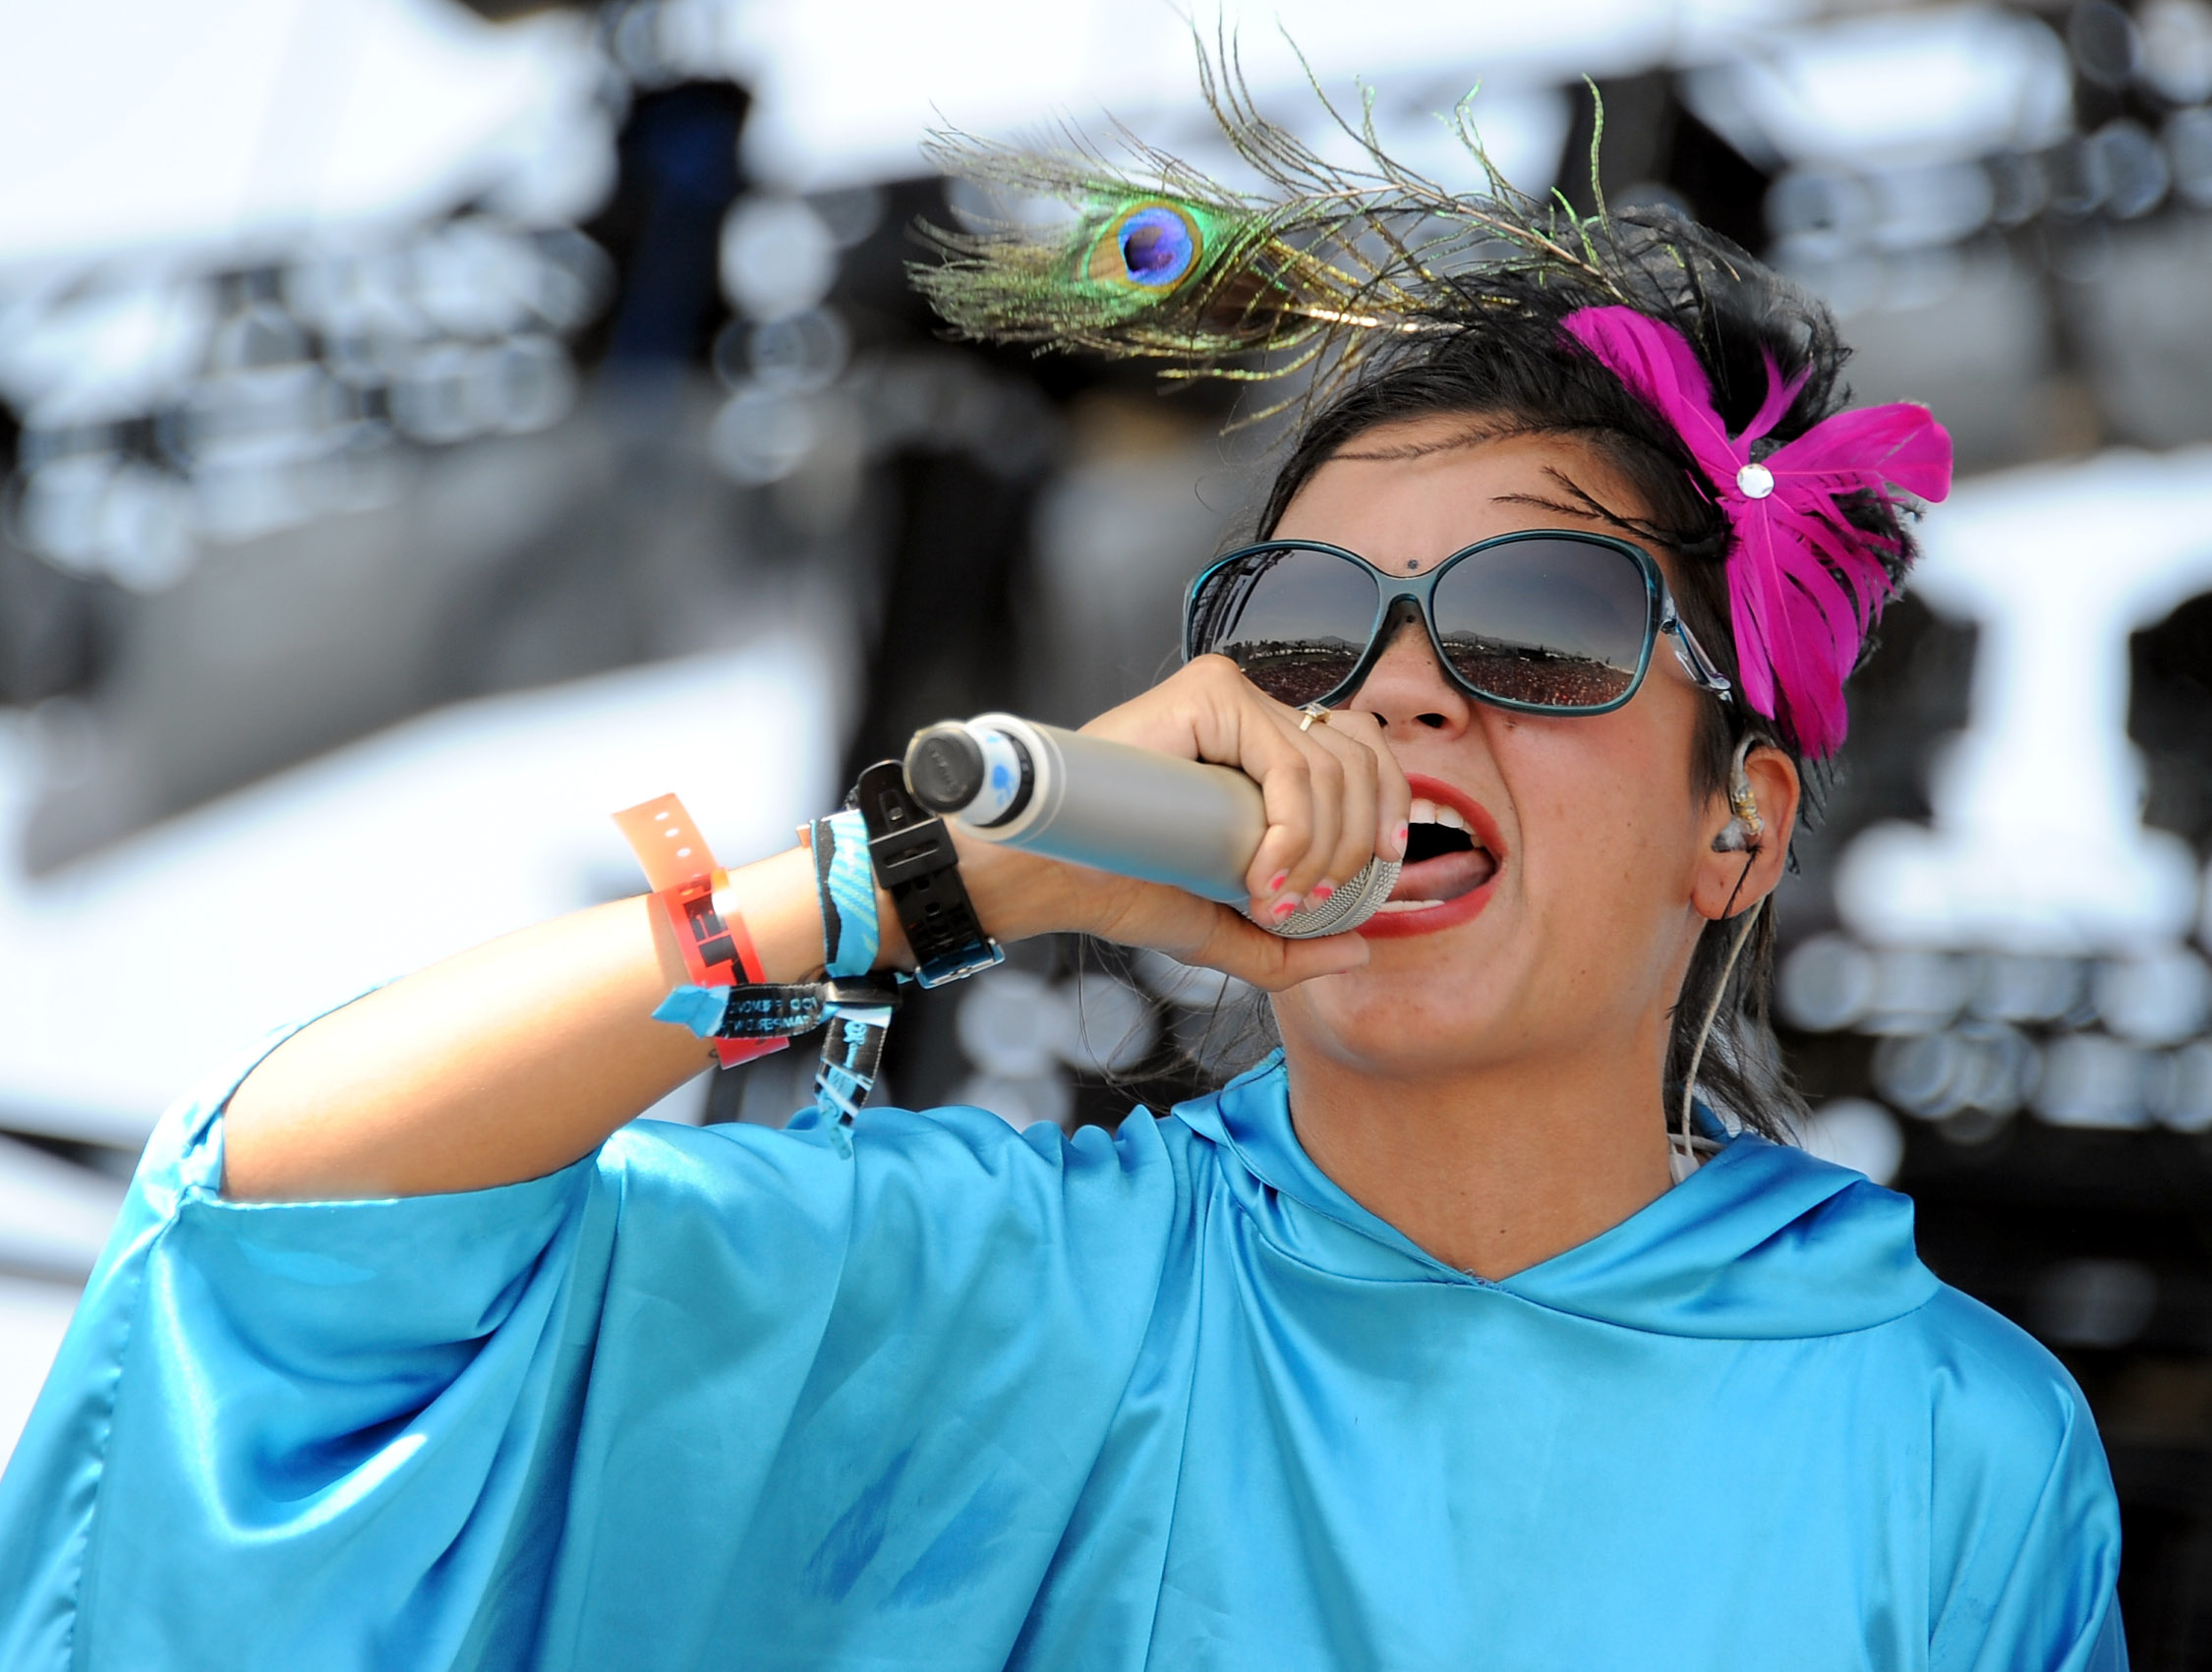 INDIO, CA - APRIL 16:  Singer Liliana Saumet of Bomba Estereo performs during Day 2 of the Coachella Valley Music & Arts Festival 2011 held at the Empire Polo Club on April 16, 2011 in Indio, California.  (Photo by Kevin Winter/Getty Images)